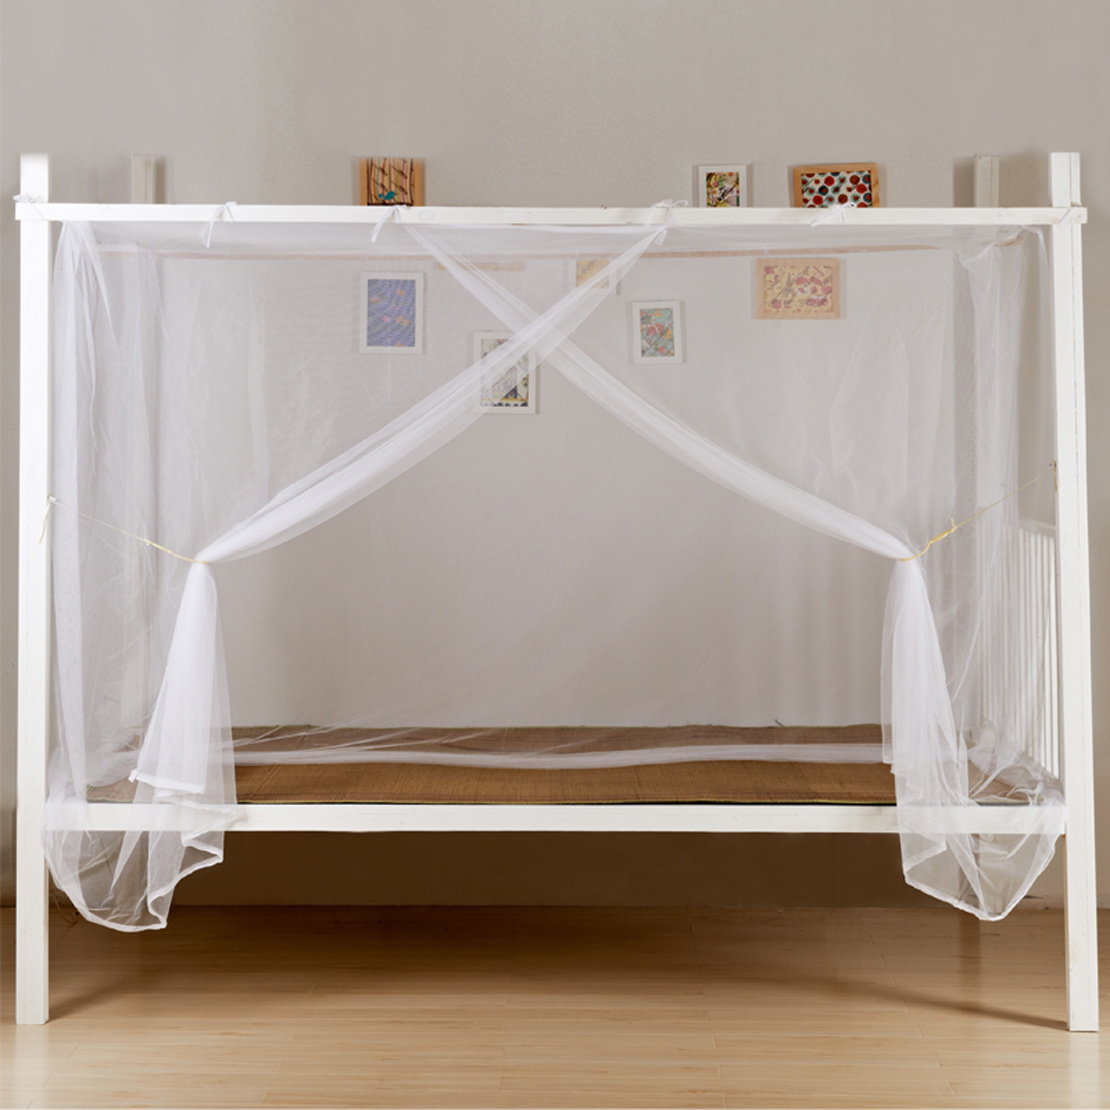 White four corner post bed canopy frame mosquito net twin for White canopy queen bed